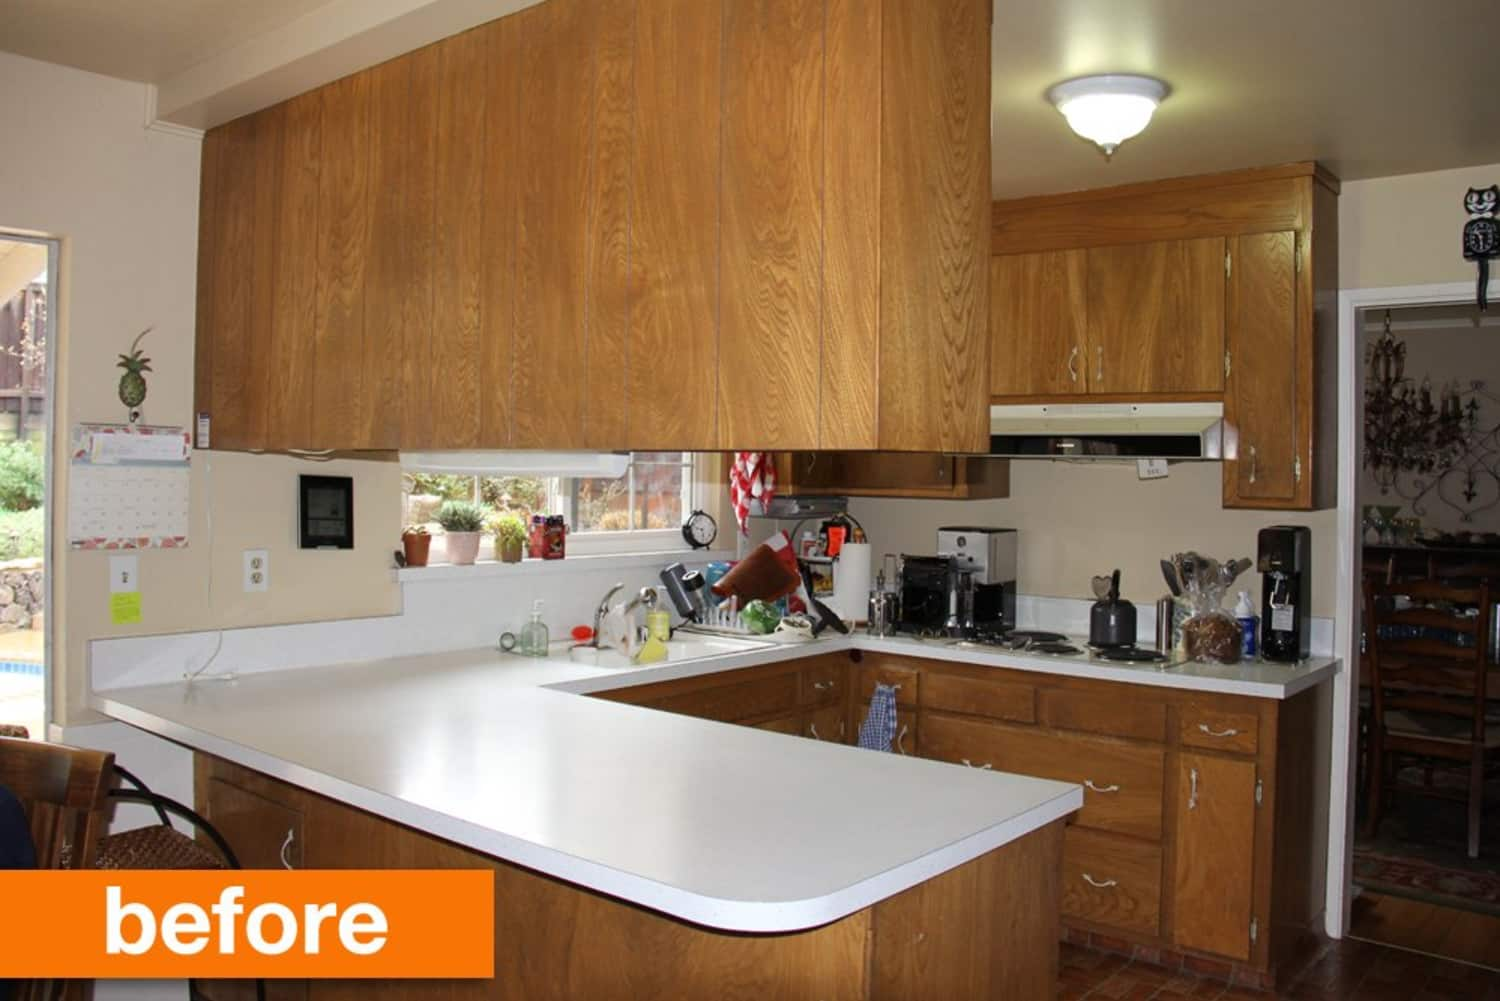 Before & After: A Compact, Updated Kitchen for a Family of 5